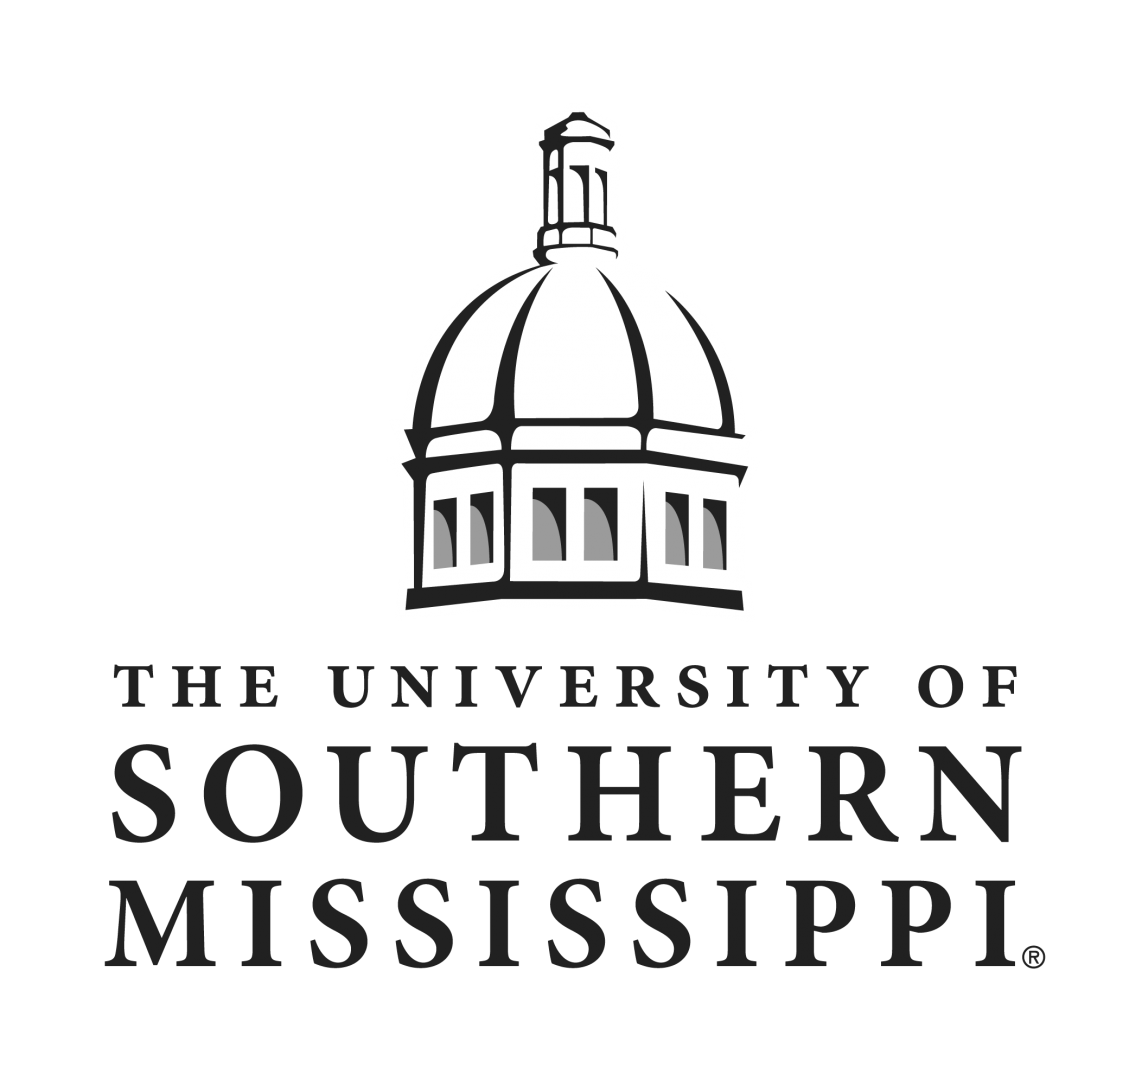 University of Southern Mississippi